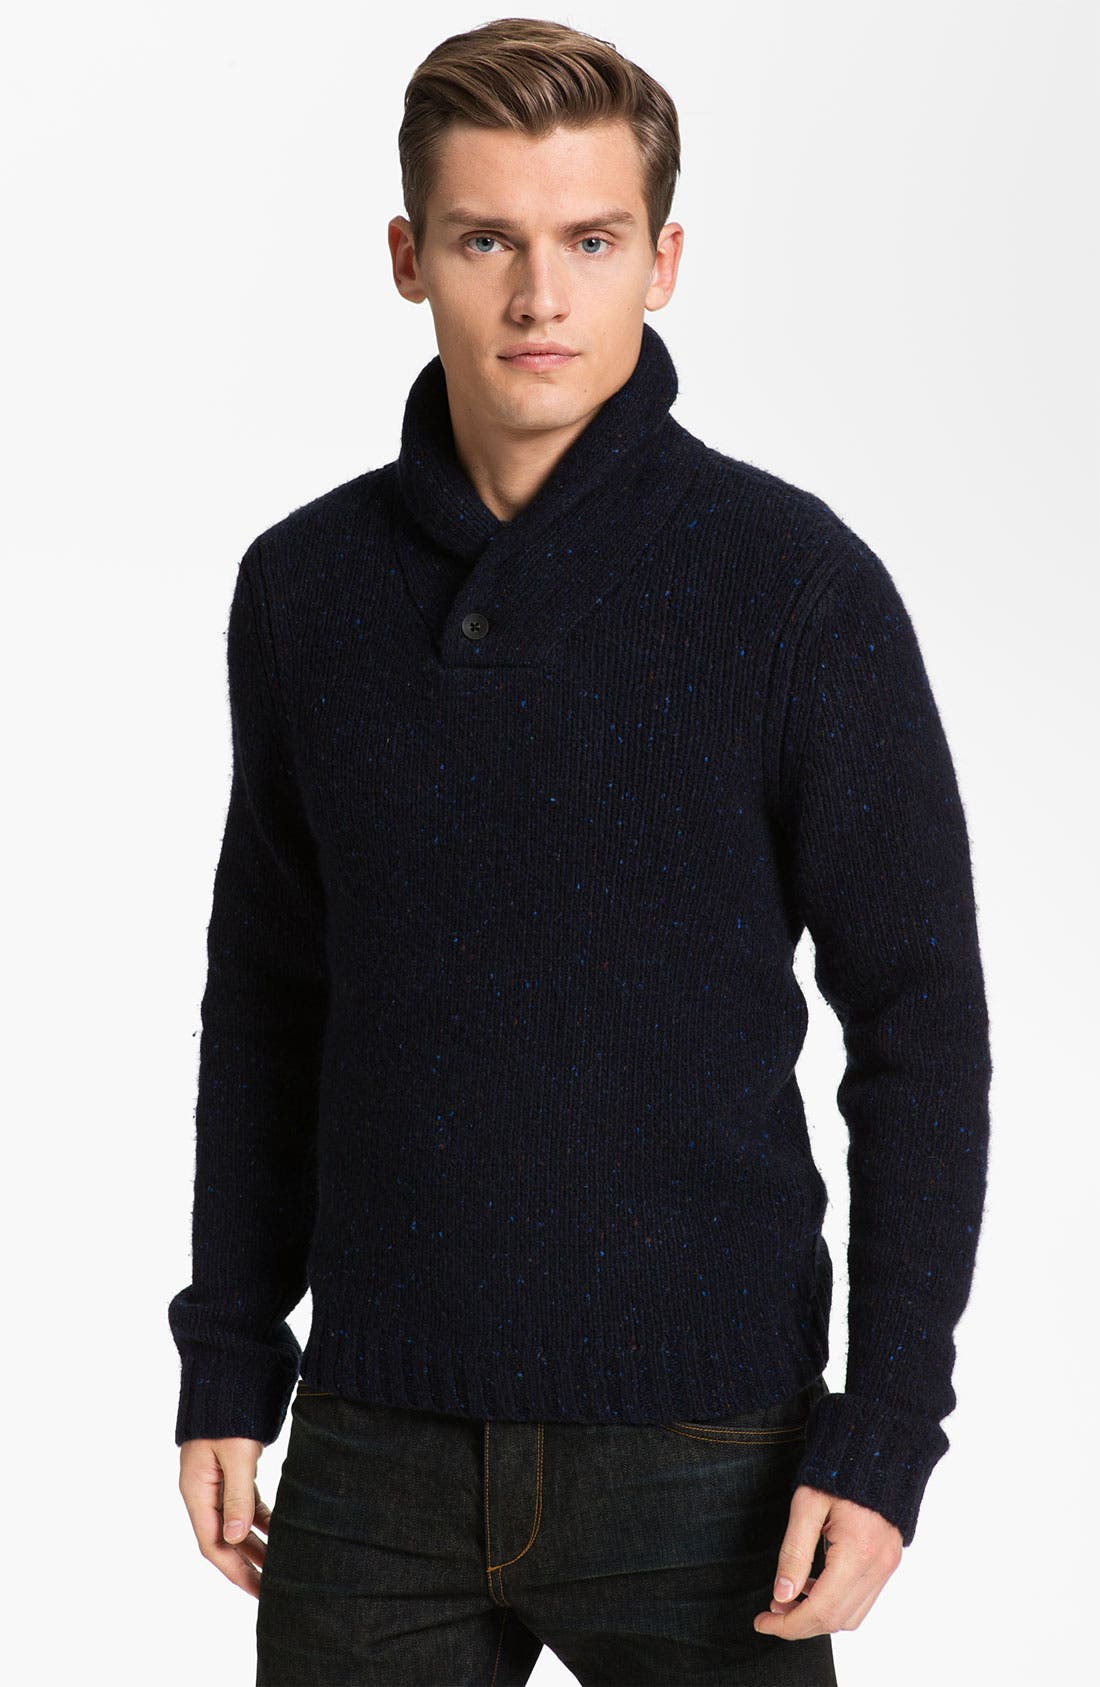 Alternate Image 1 Selected - rag & bone 'Vail' Donegal Knit Shawl Collar Sweater